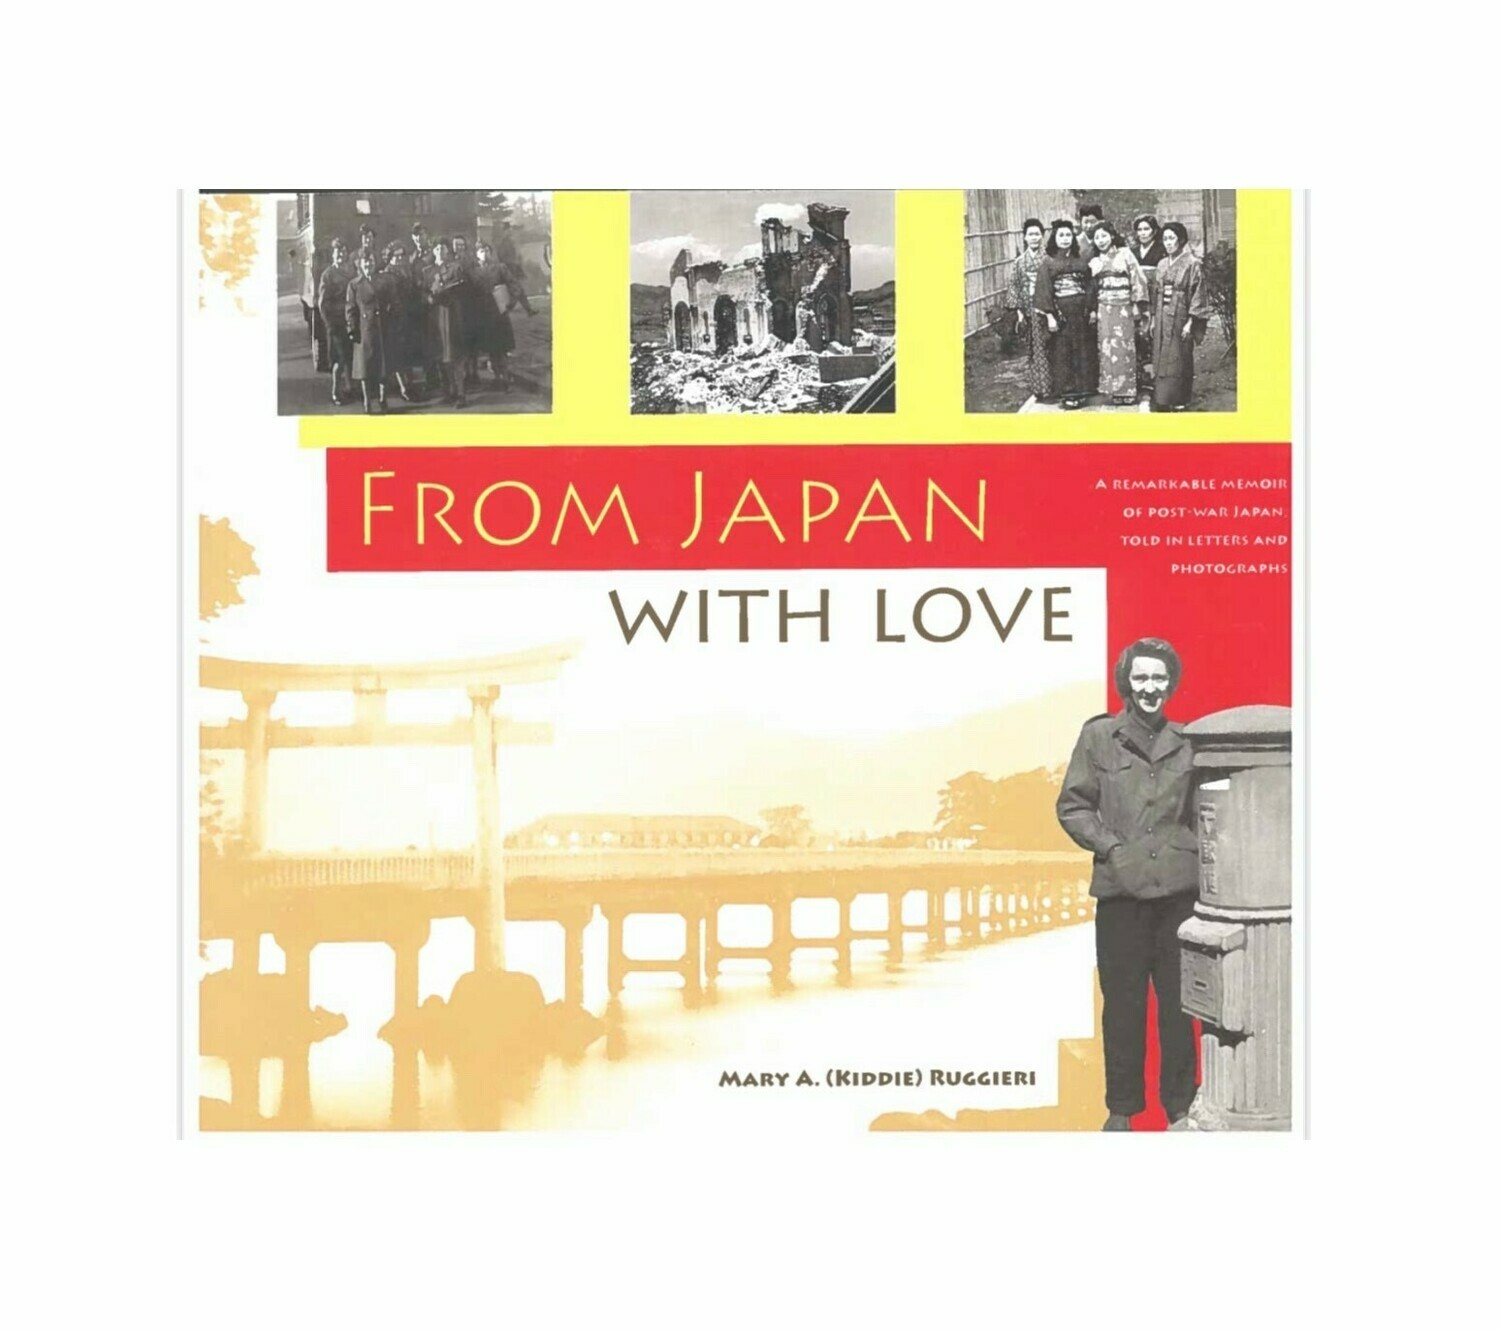 From Japan With Love By Mary A. Ruggieri